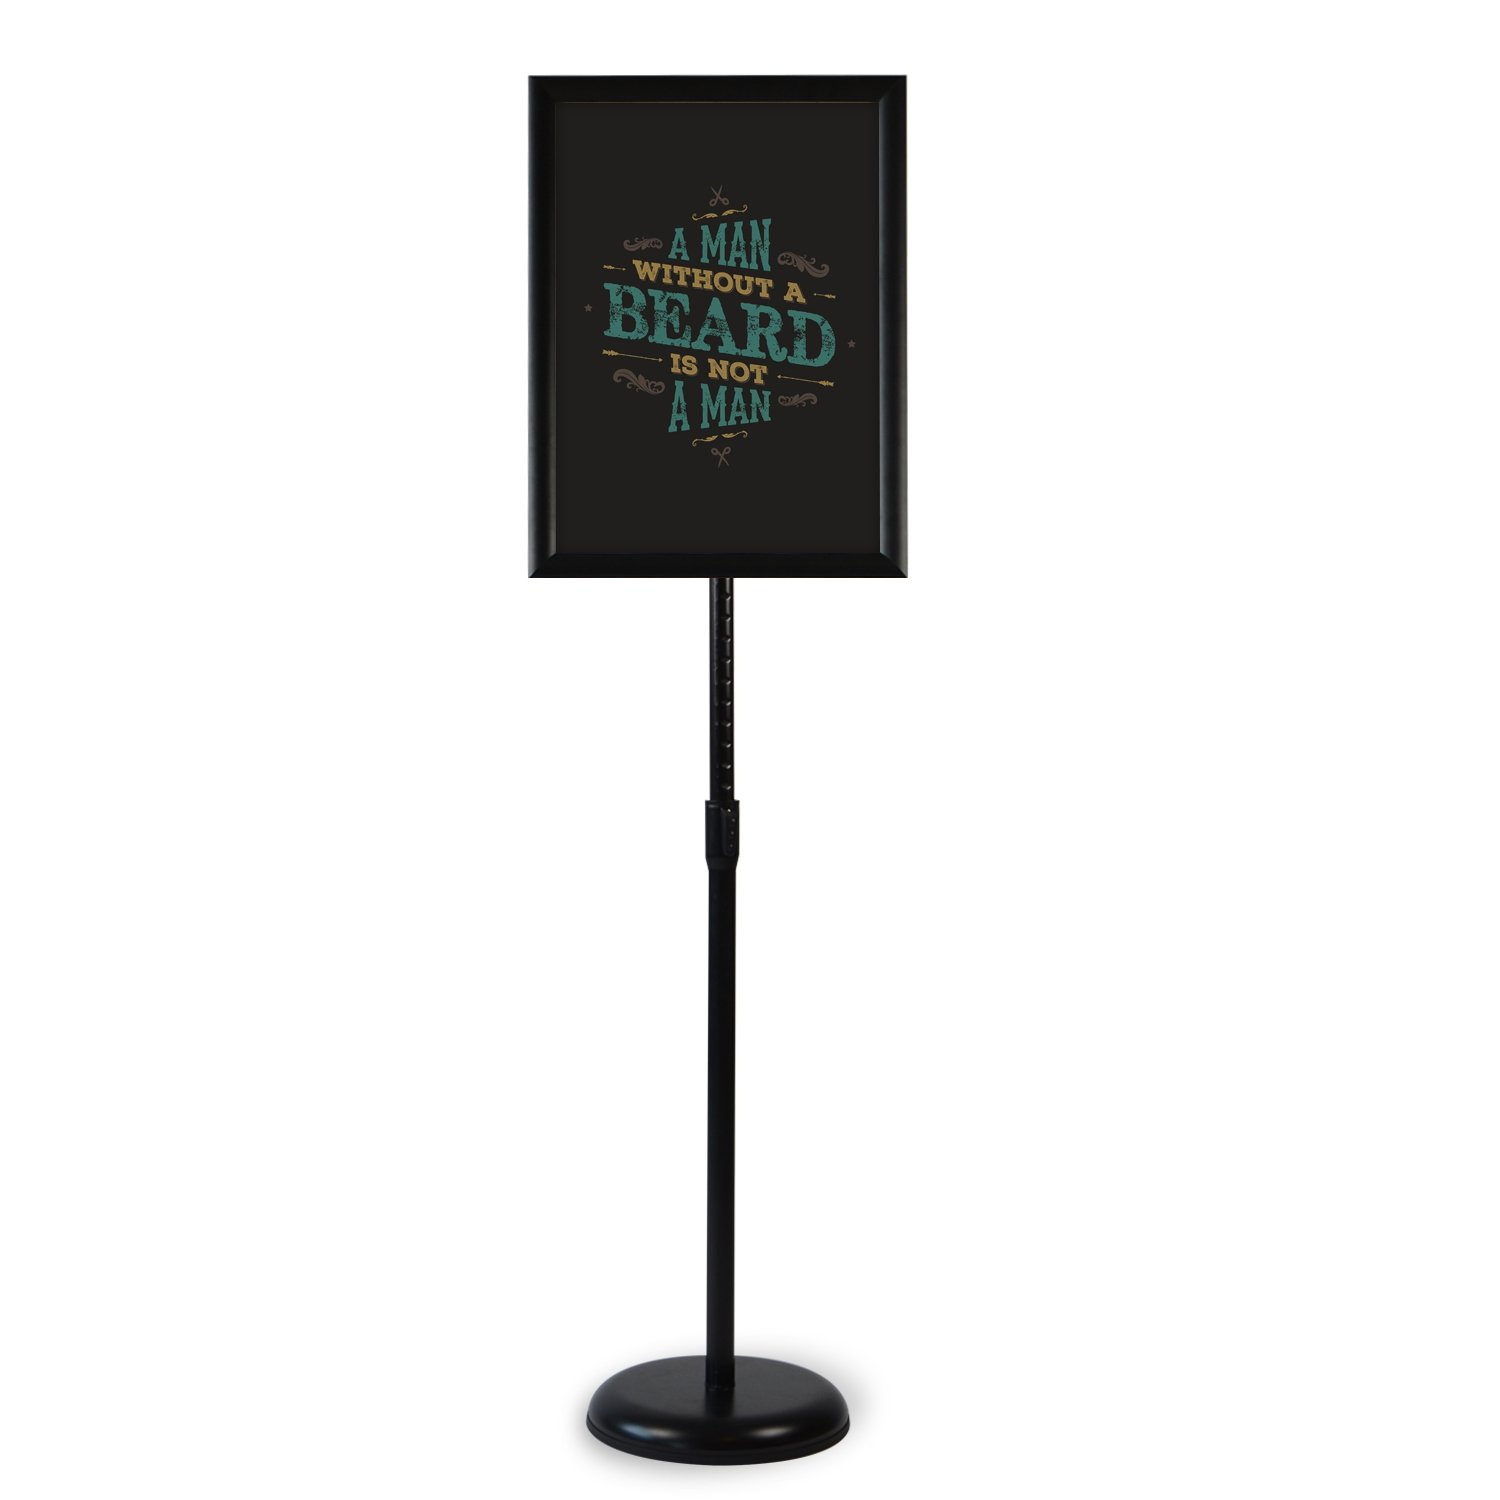 Klvied Heavy Duty Pedestal Poster Sign Stand, Adjustable Aluminum 8.5'' x 11'' Floor Standing Sign Holder for Both Vertical and Horizontal View, Black by Klvied